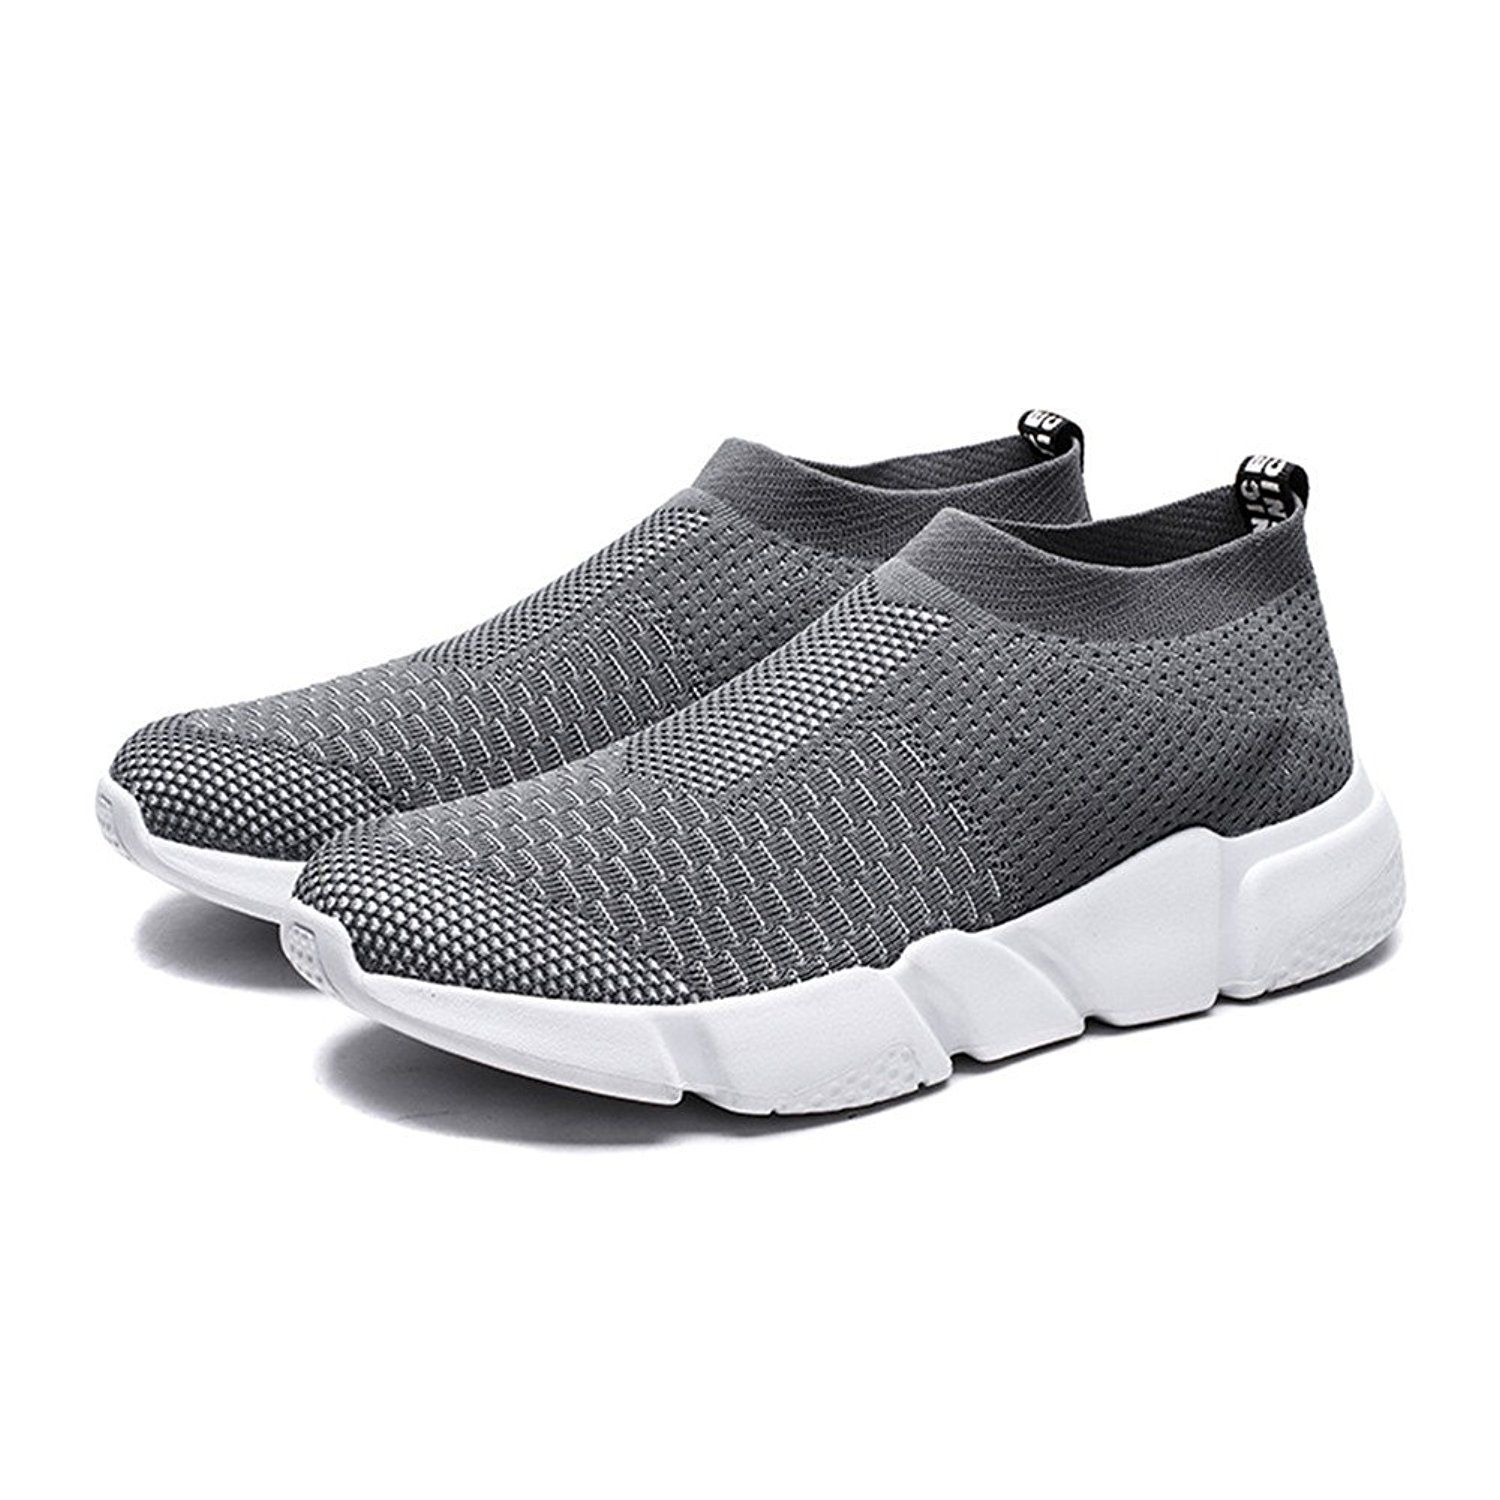 Mens Mesh Cloth Sports Sneakers Slip-on Light Breathable Running Shoes Gray